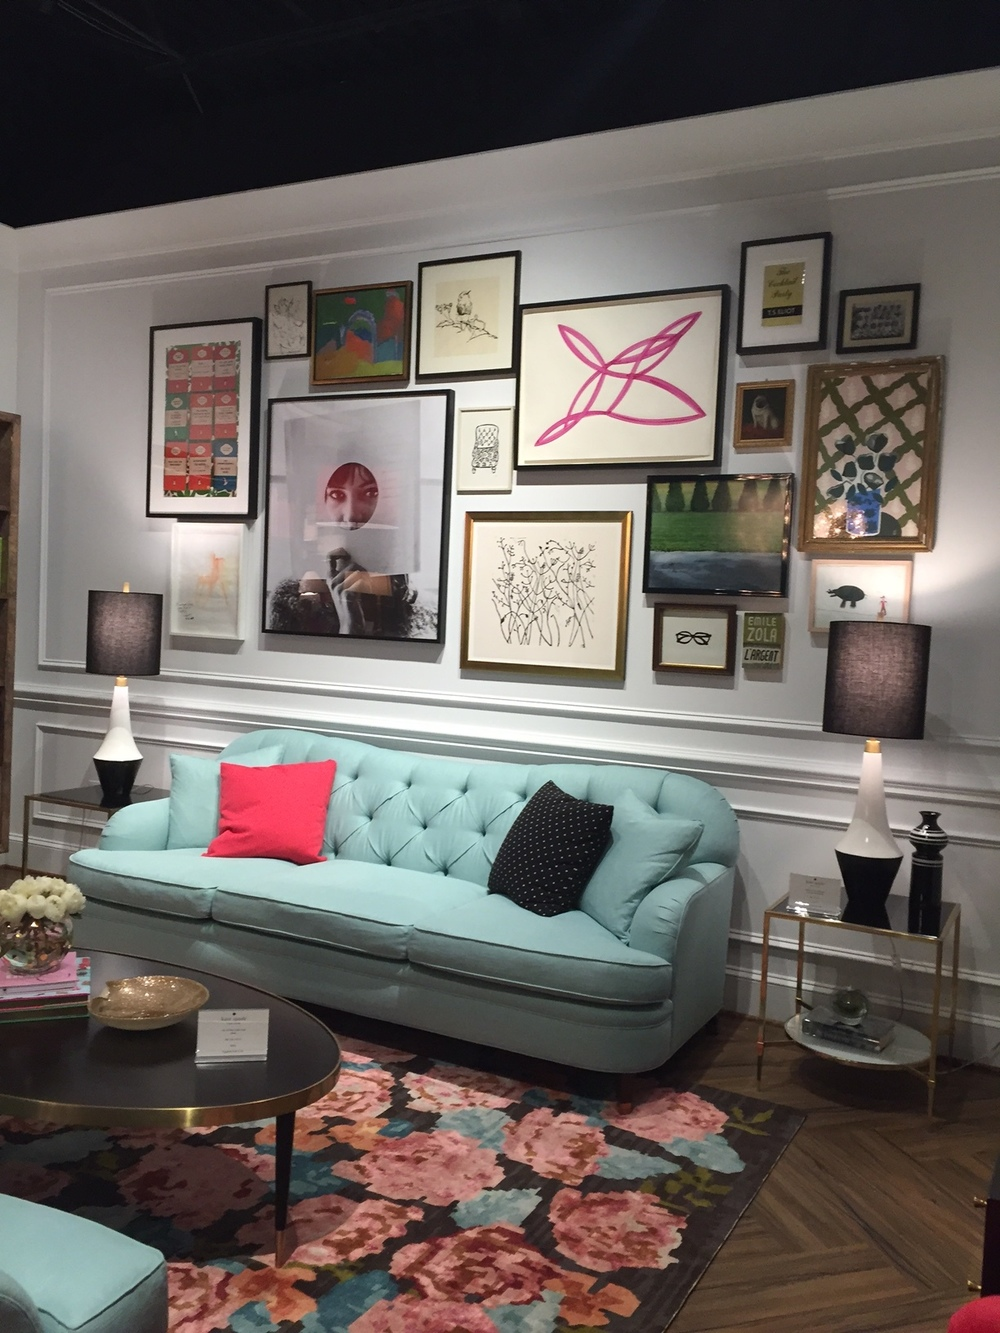 Bon ... Kate Spade New York Made A Big Debut, Launching Furniture At High Point  Market. It Was The Talk Of The Town, As Editors, Buyers And Interior  Designers ...